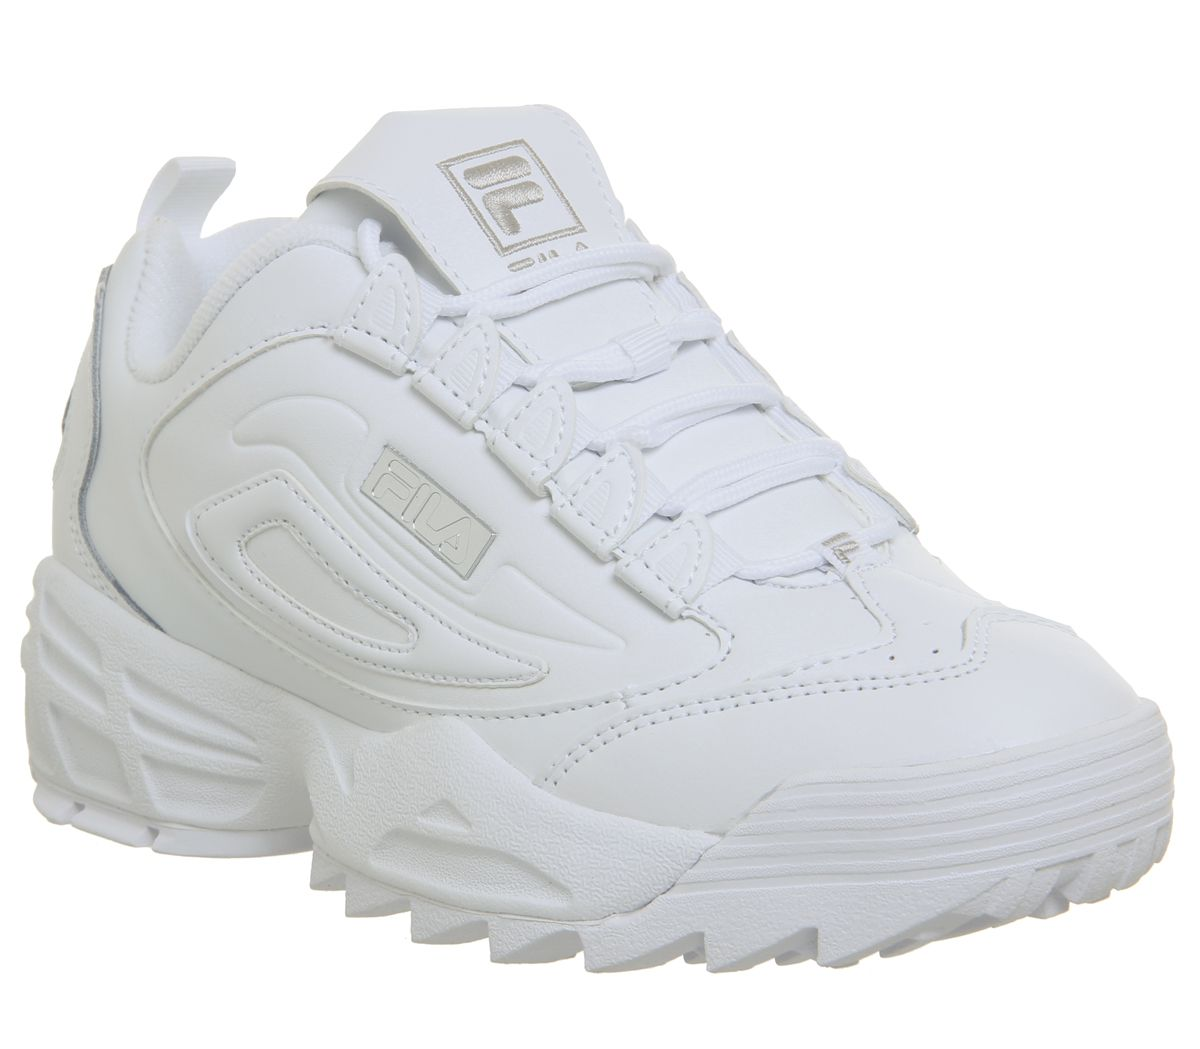 Details about Womens FILA Disrupter 3 Trainers White Sneakers- show  original title